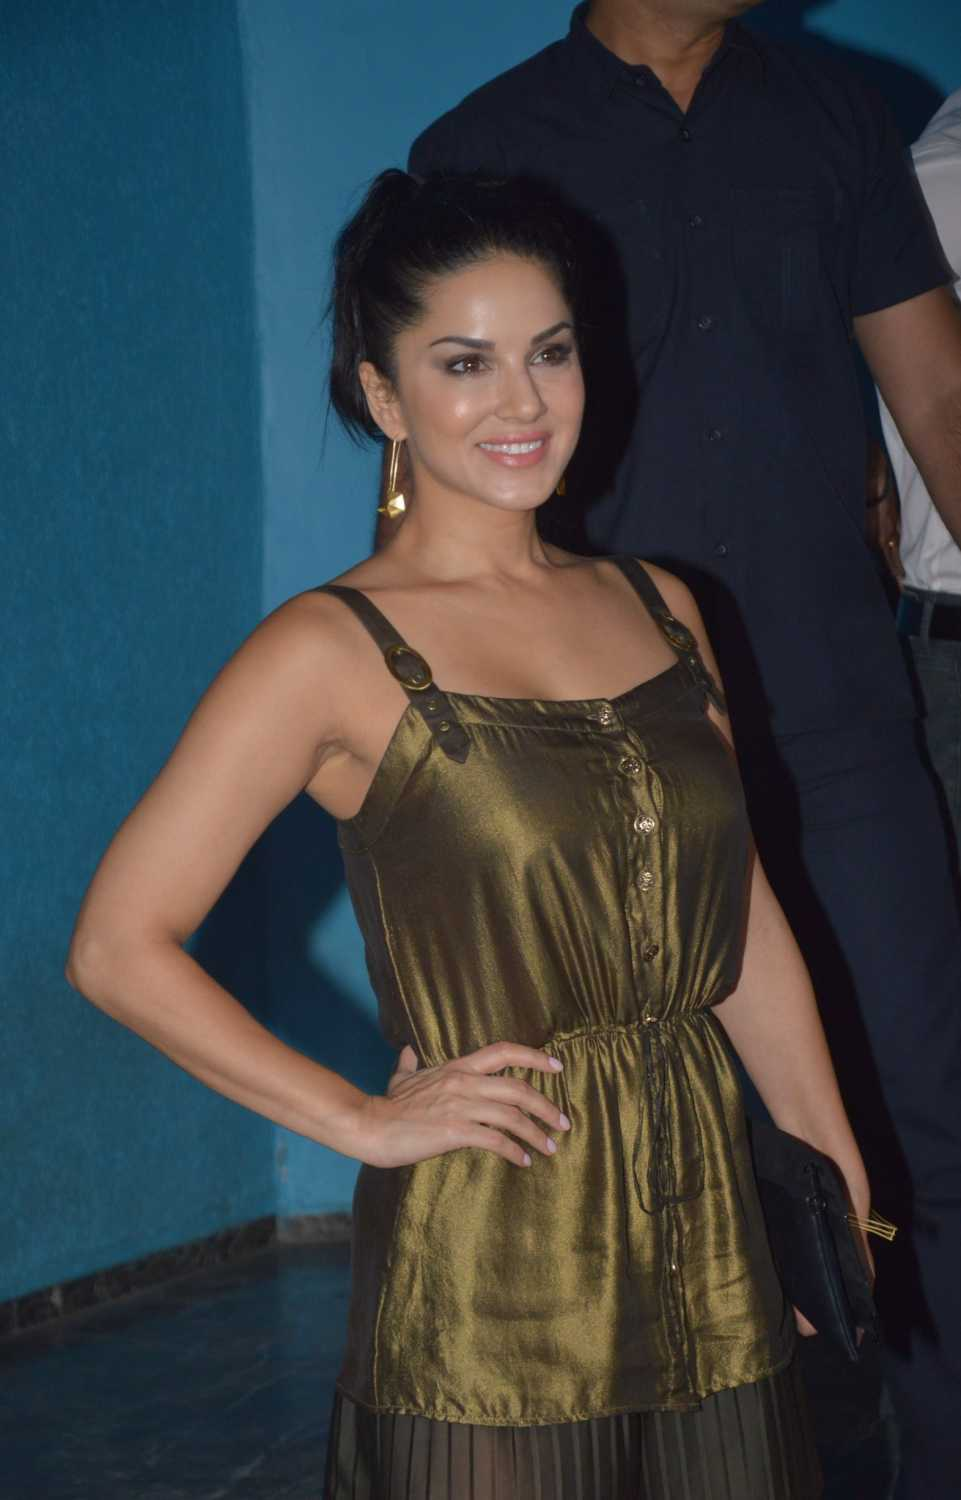 karnataka decides against hosting sunny leone's new year's eve bash